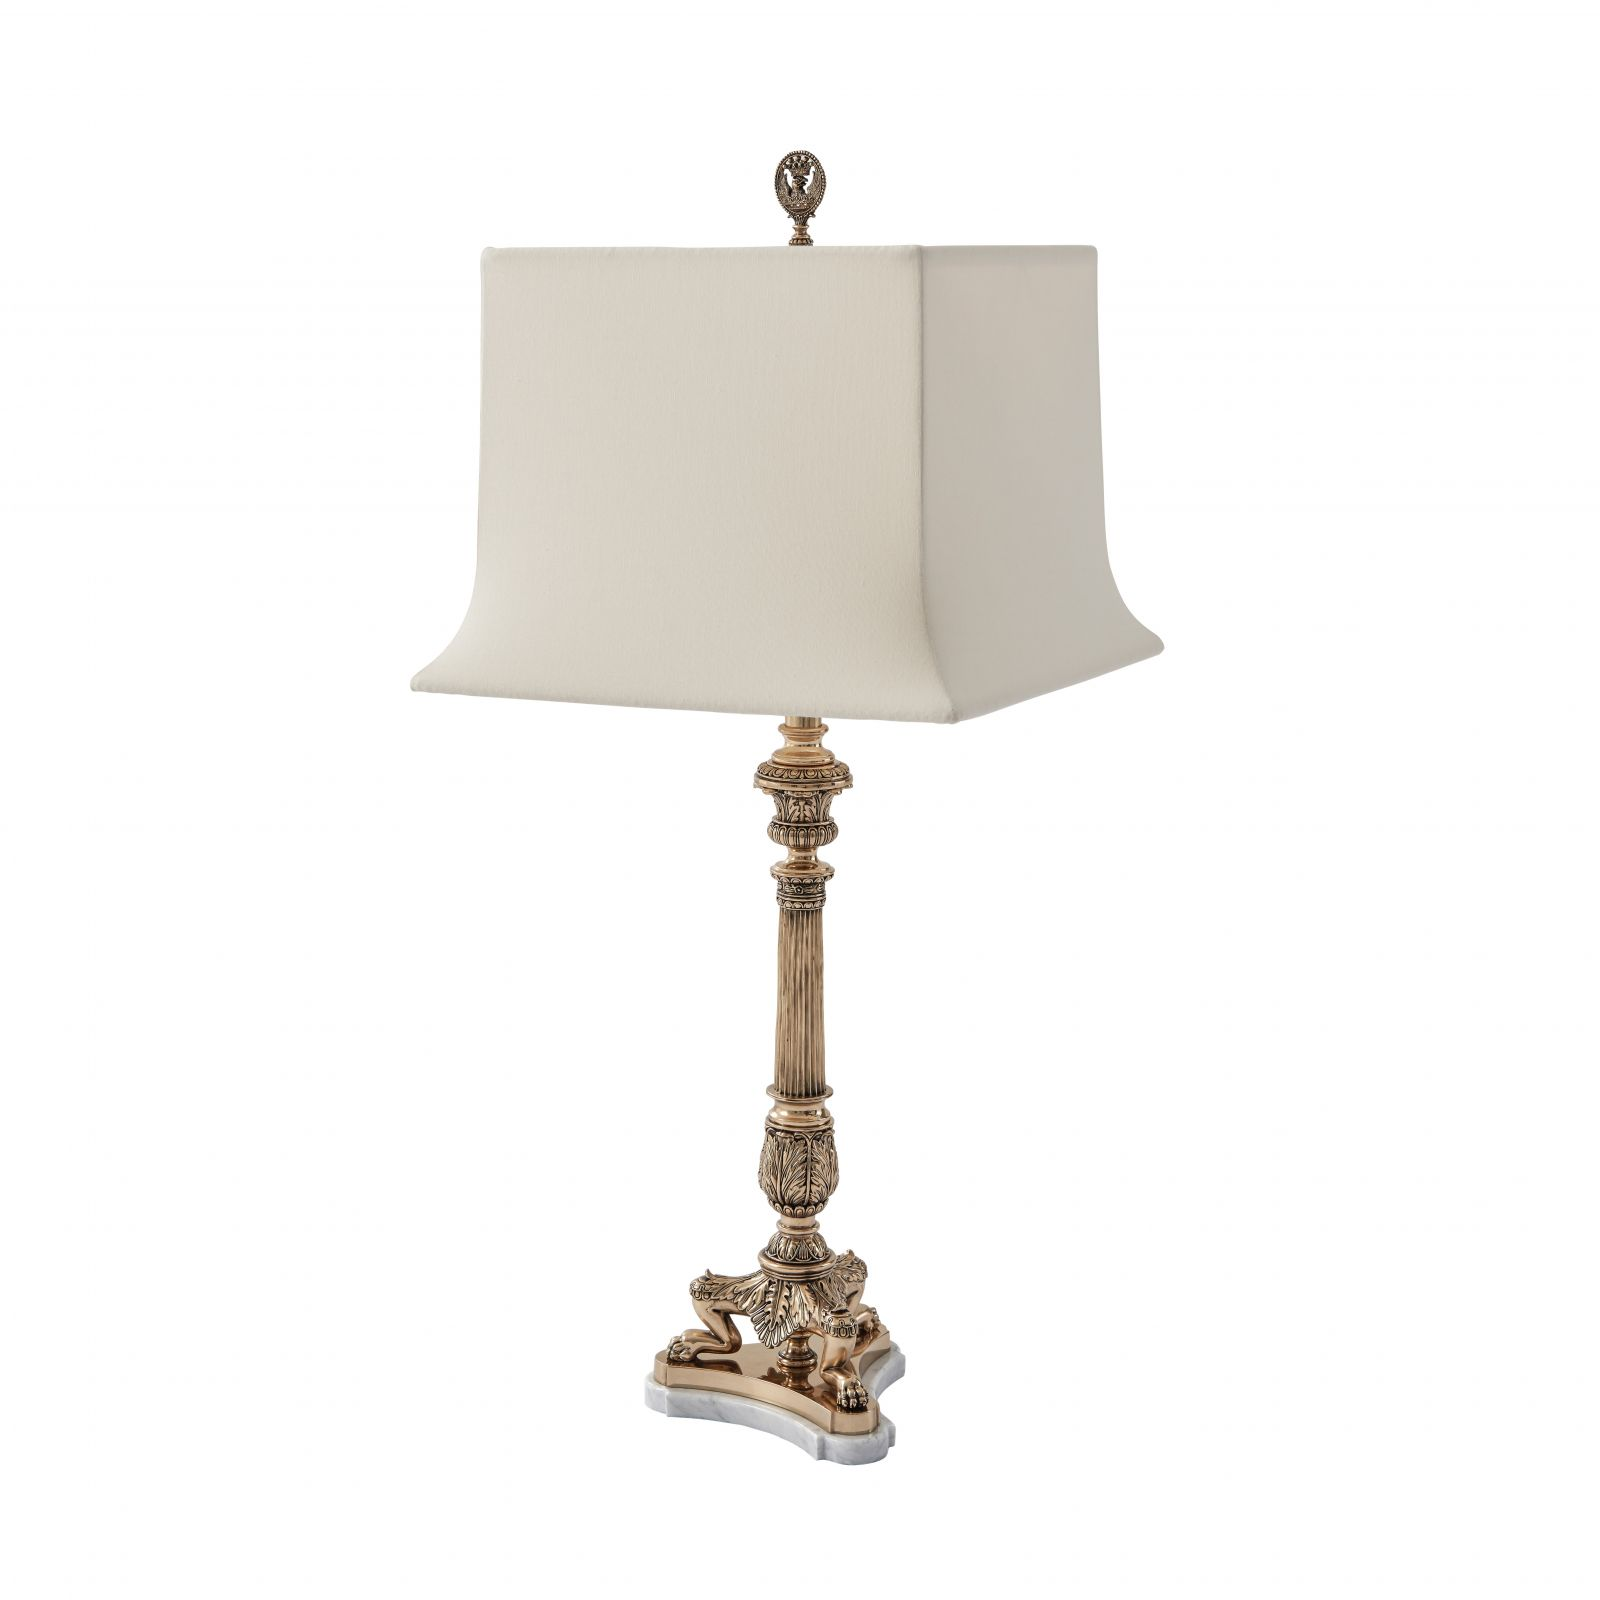 A Finely Cast Brass Table Lamp